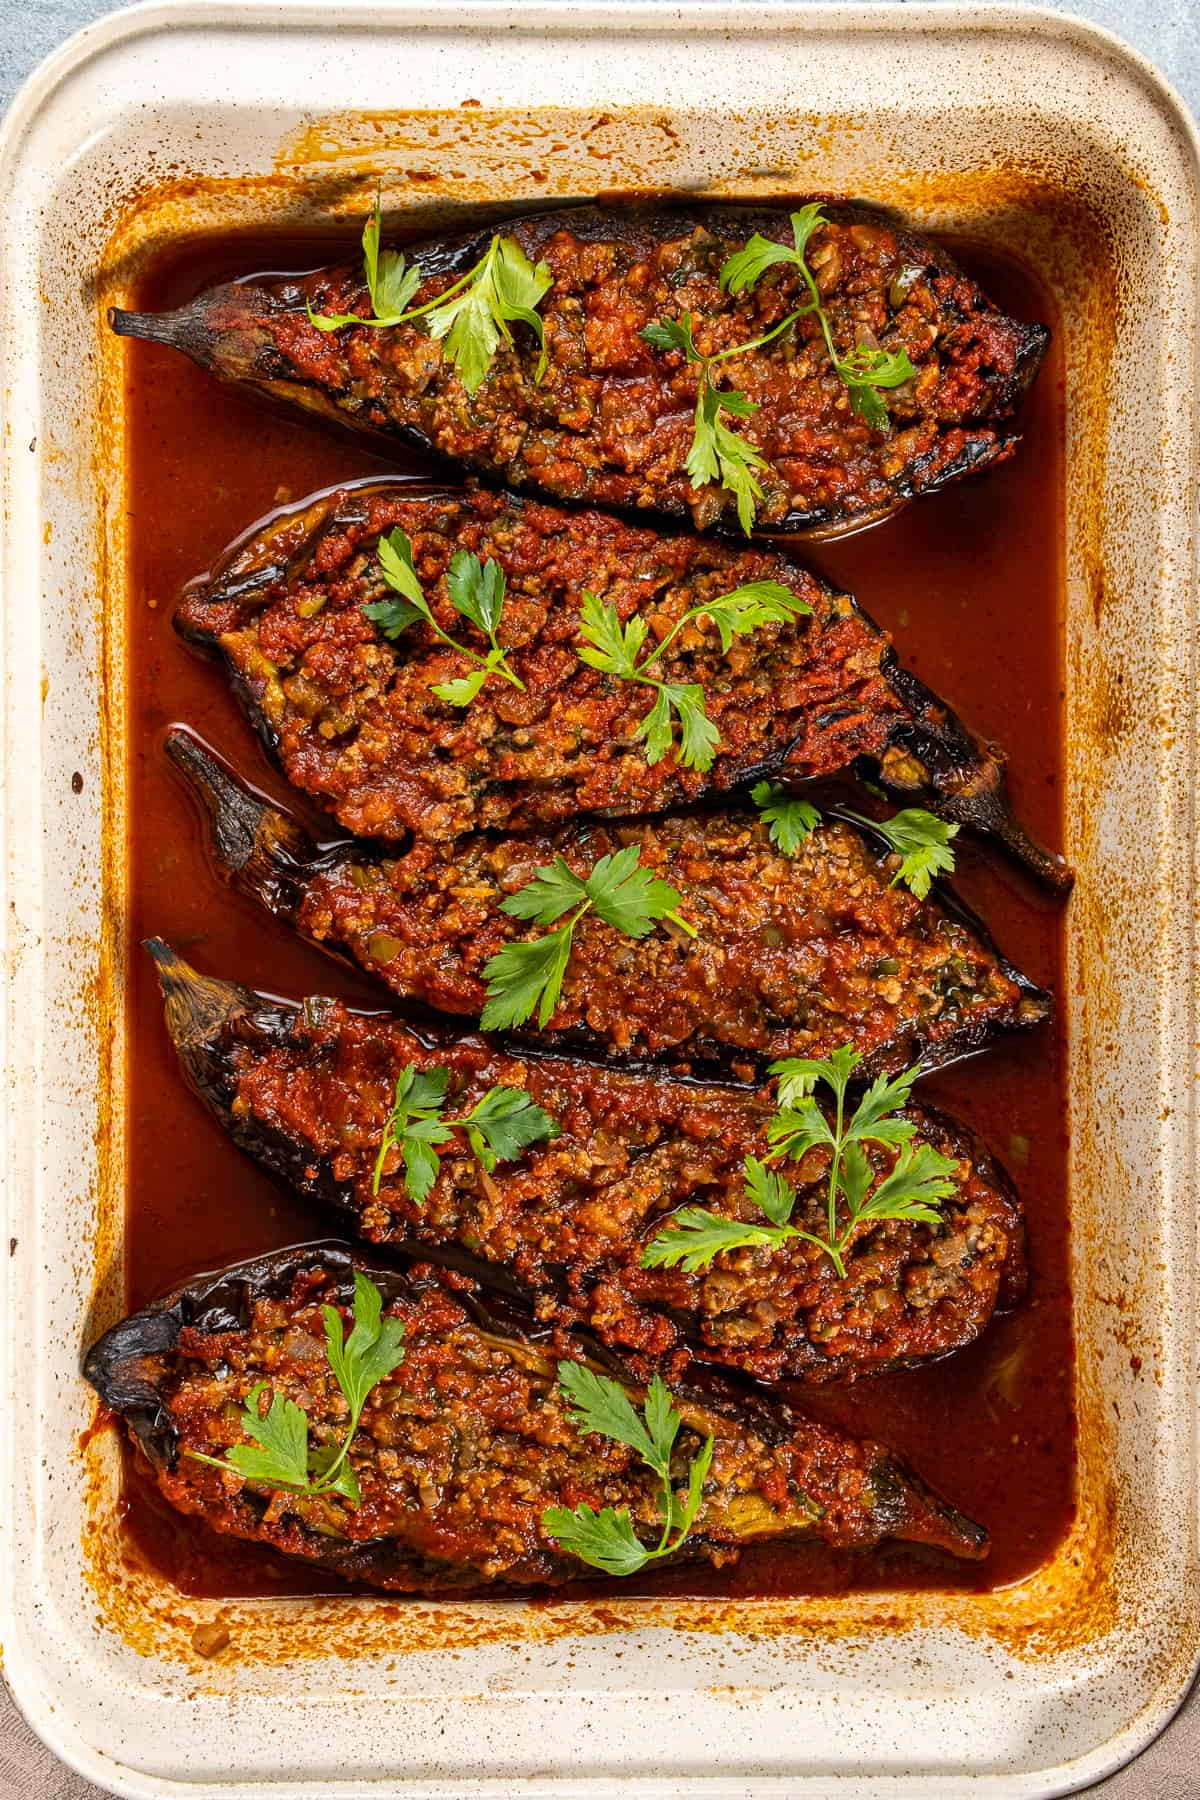 Ground beef stuffed eggplants baked in tomato sauce garnished with parsley in a baking pan.